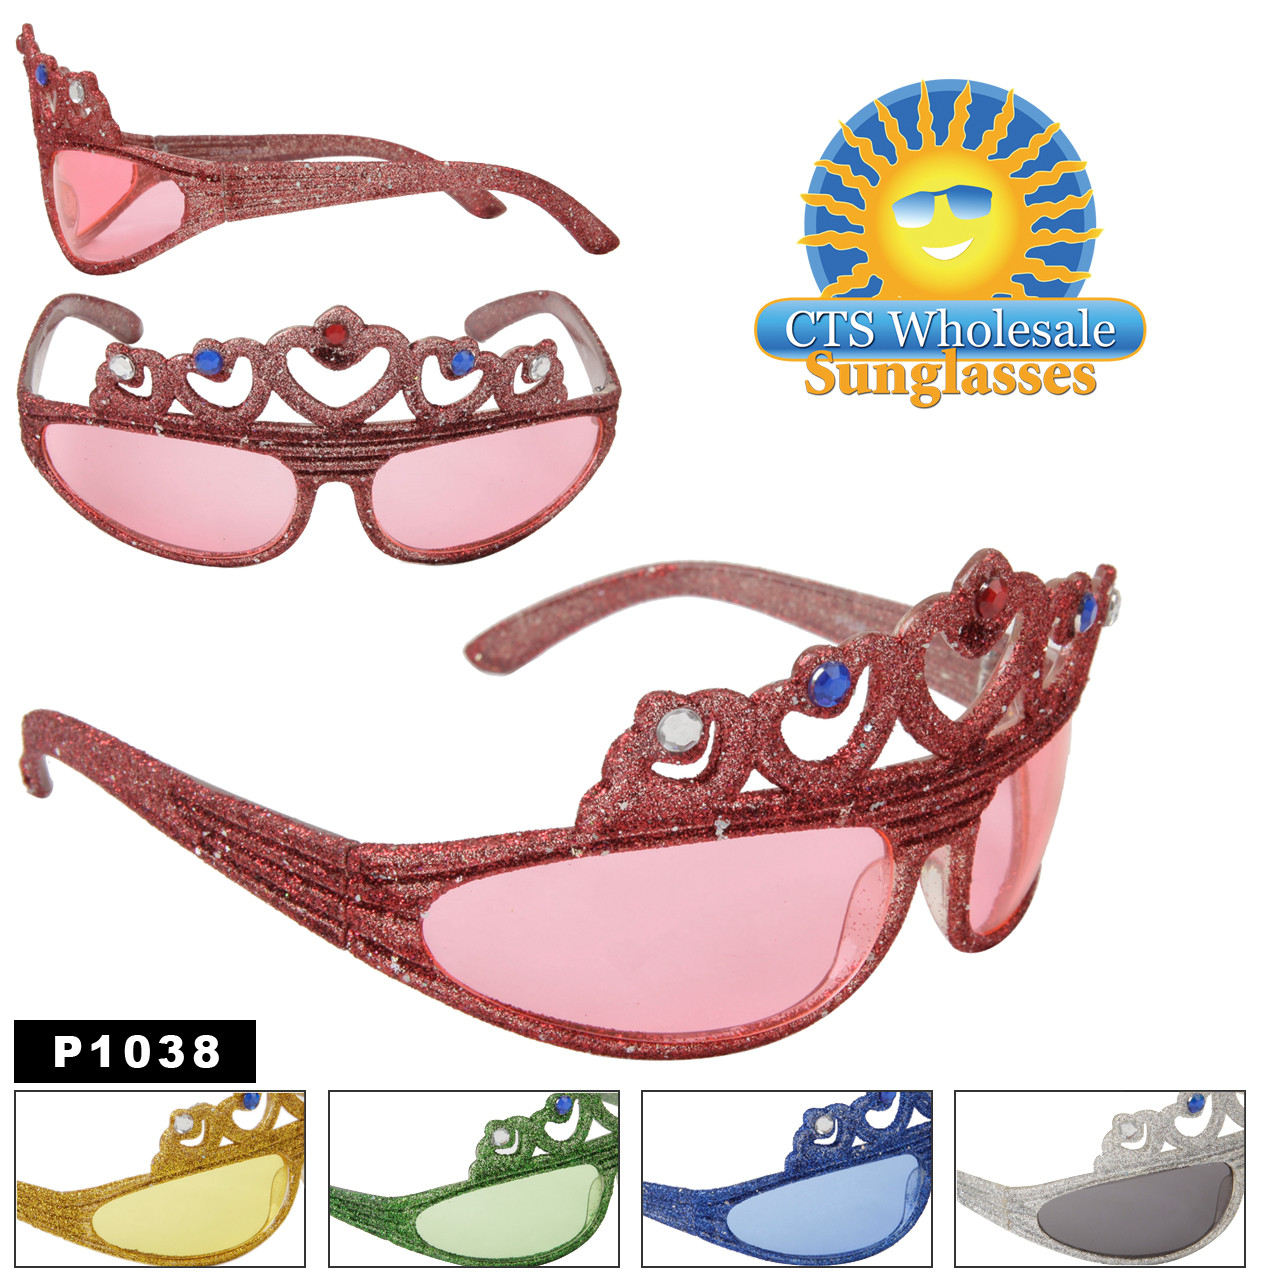 Tiara Sunglasses with Rhinestones and Glitter